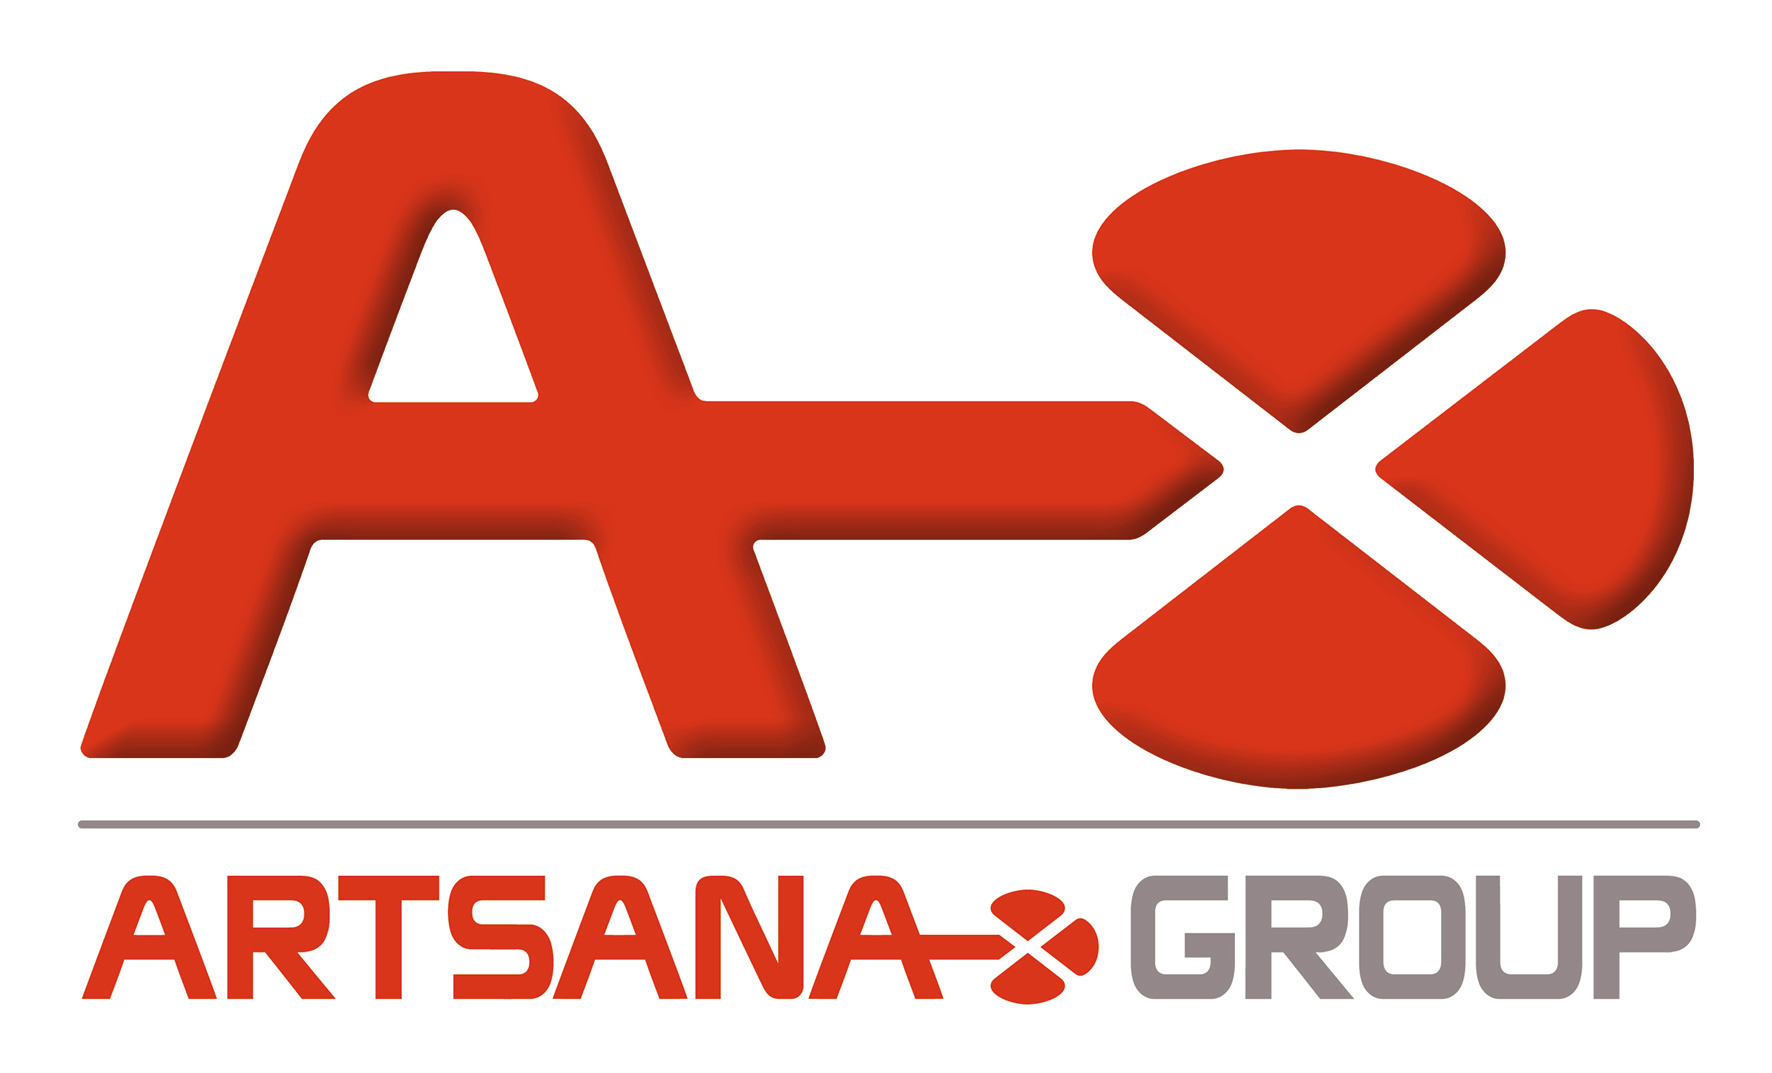 35. Artsana Group